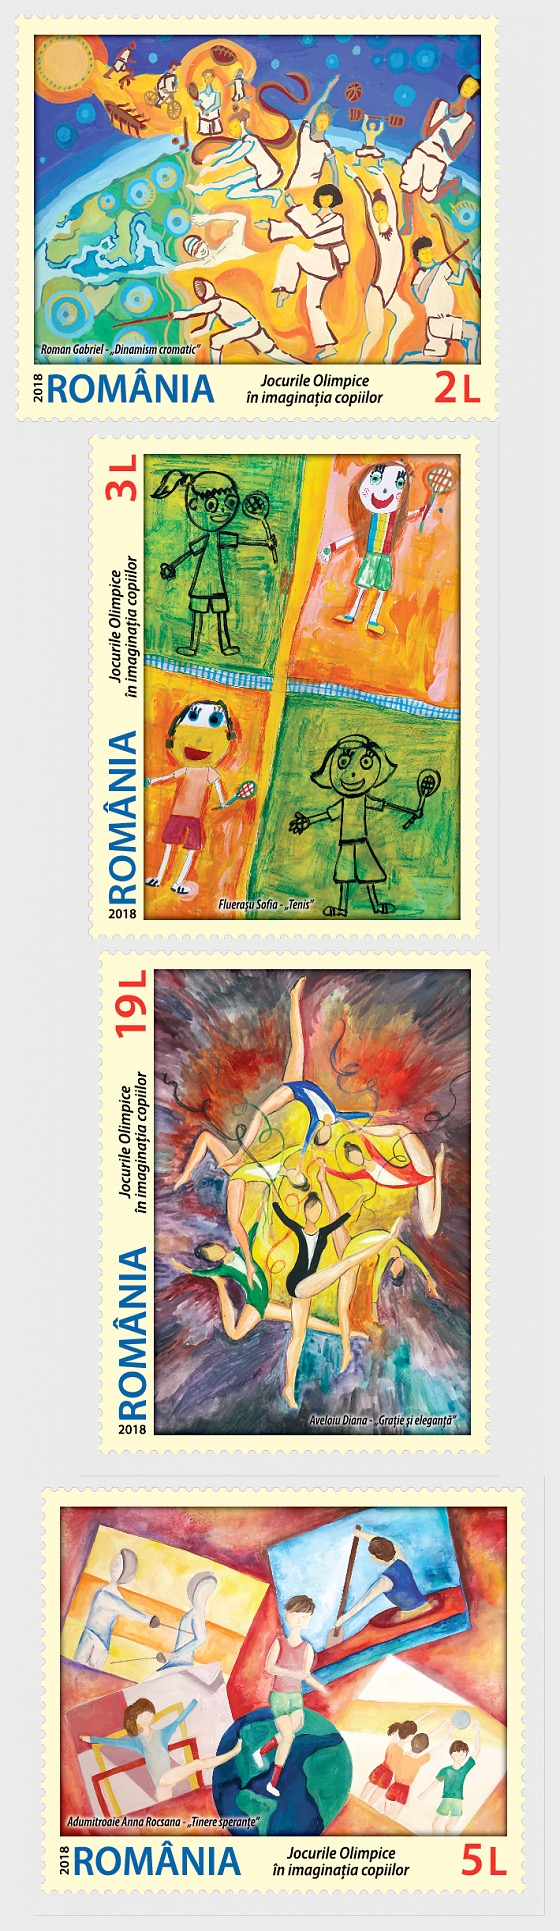 Olympic Games - In Children's Imagination - Set